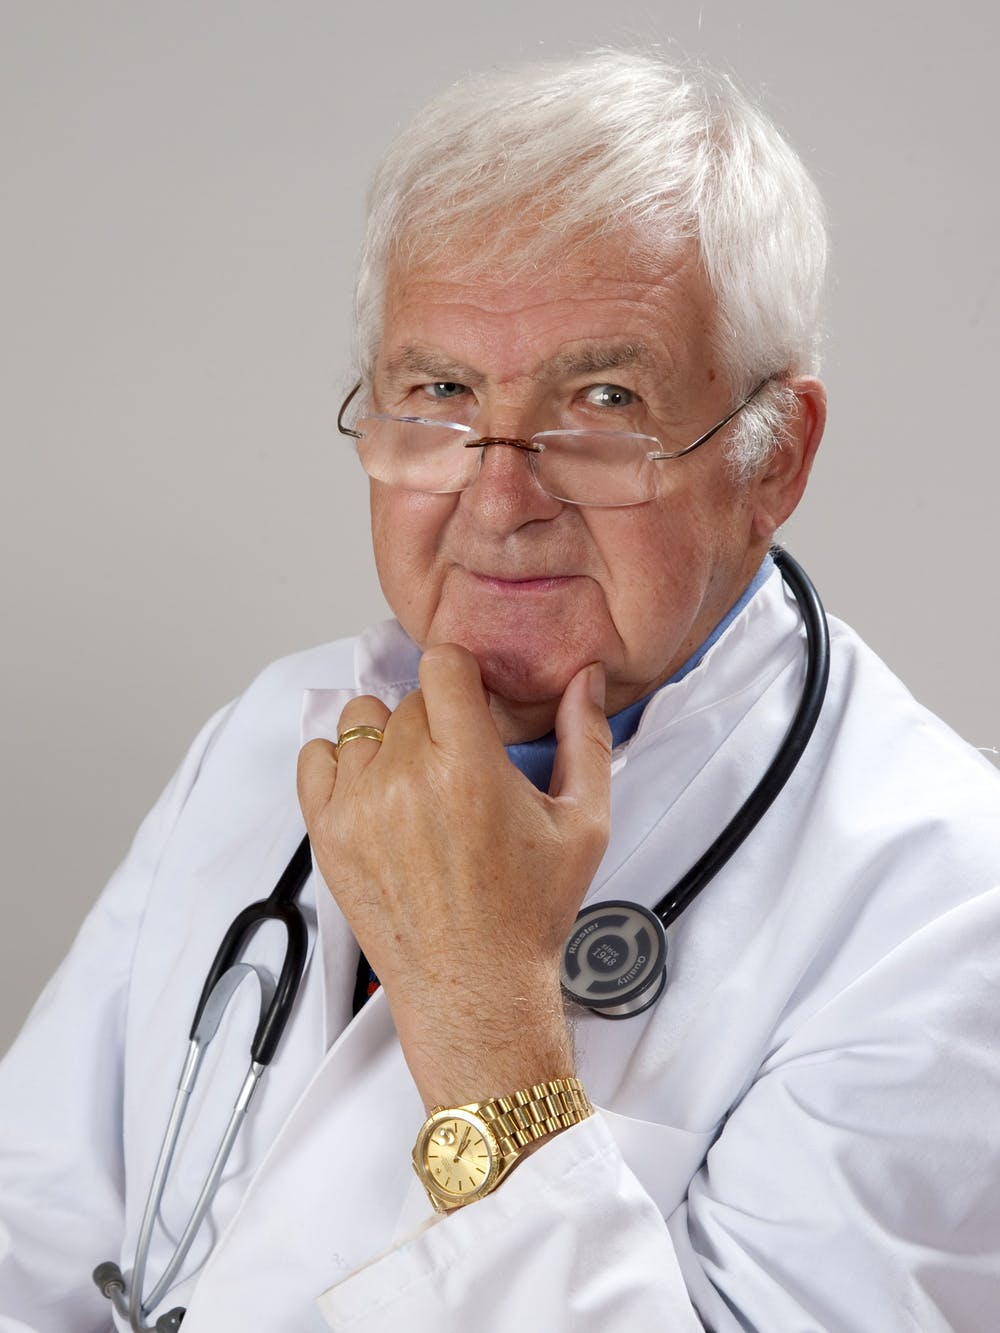 Doctor carrying stethoscope | Photo: Pexels